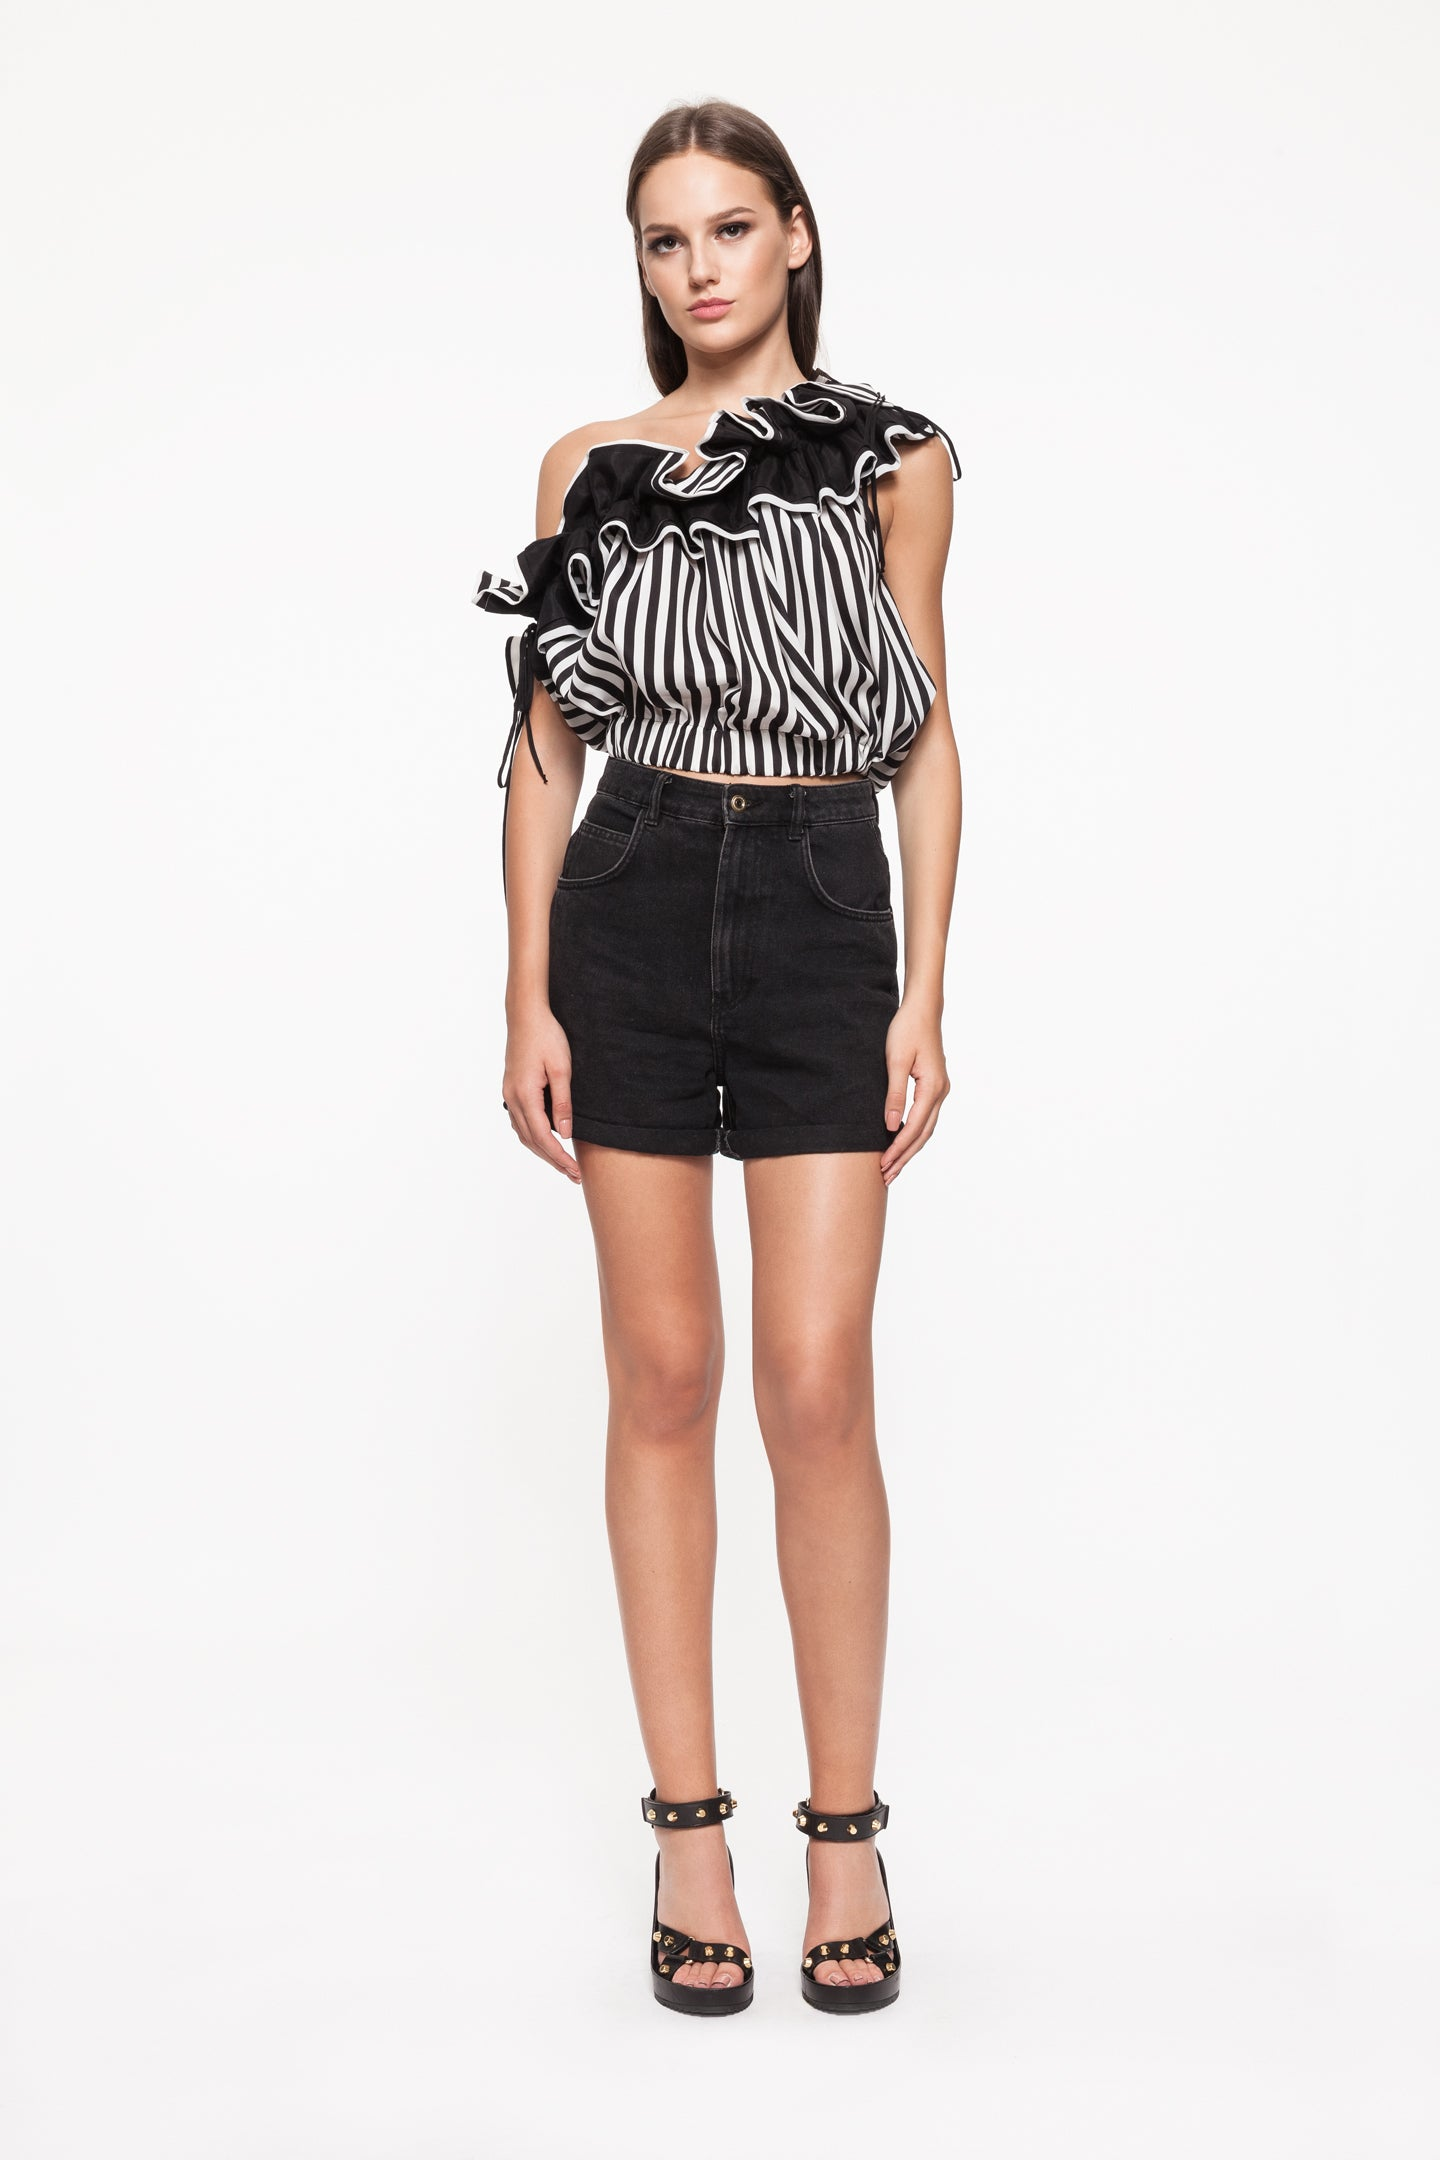 PAIGE Black and White Ruffle Top